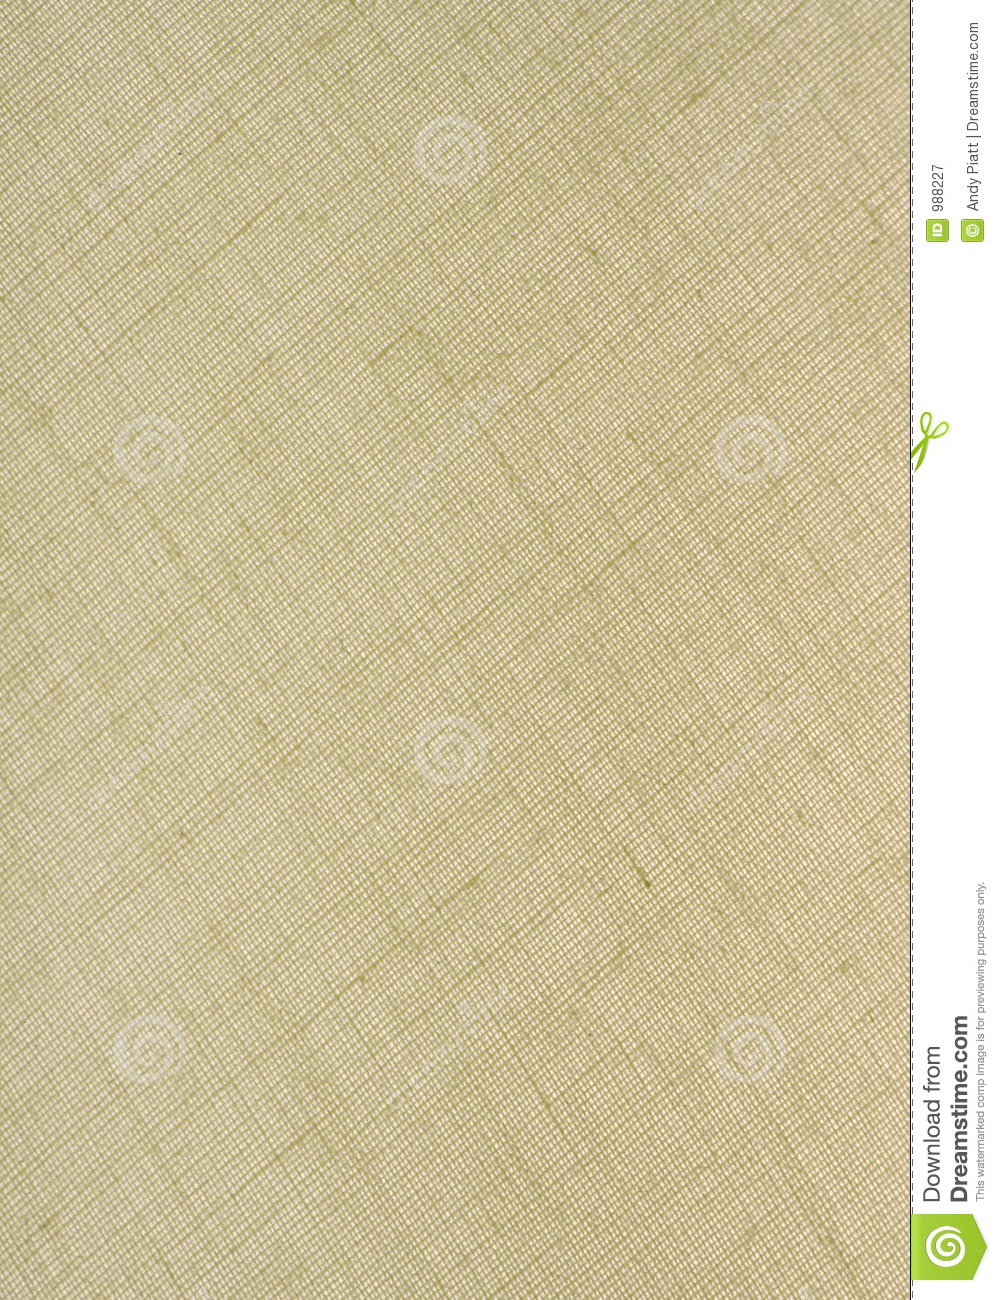 Natural Linen Fabric Background